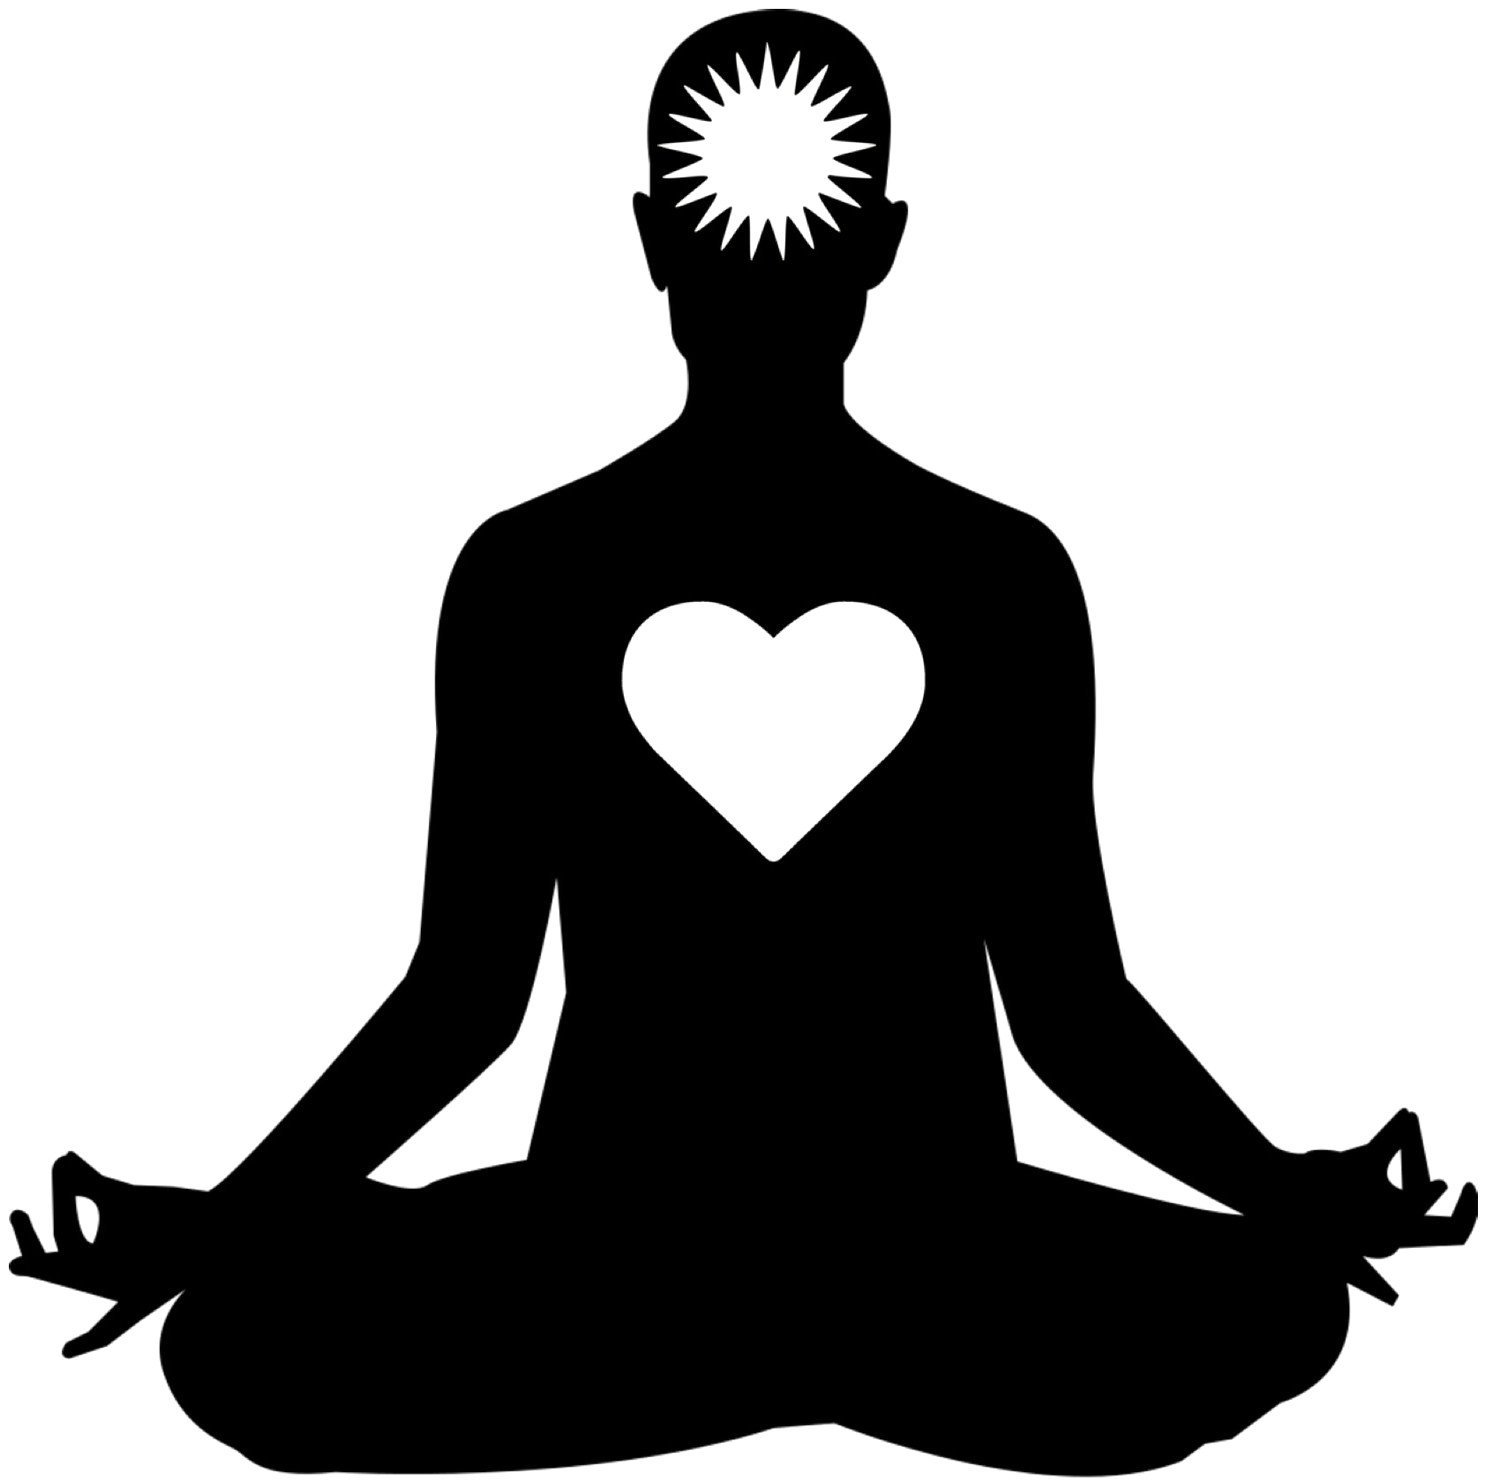 hight resolution of yoga clipart 4 h meditation health and wellness 10 7 15